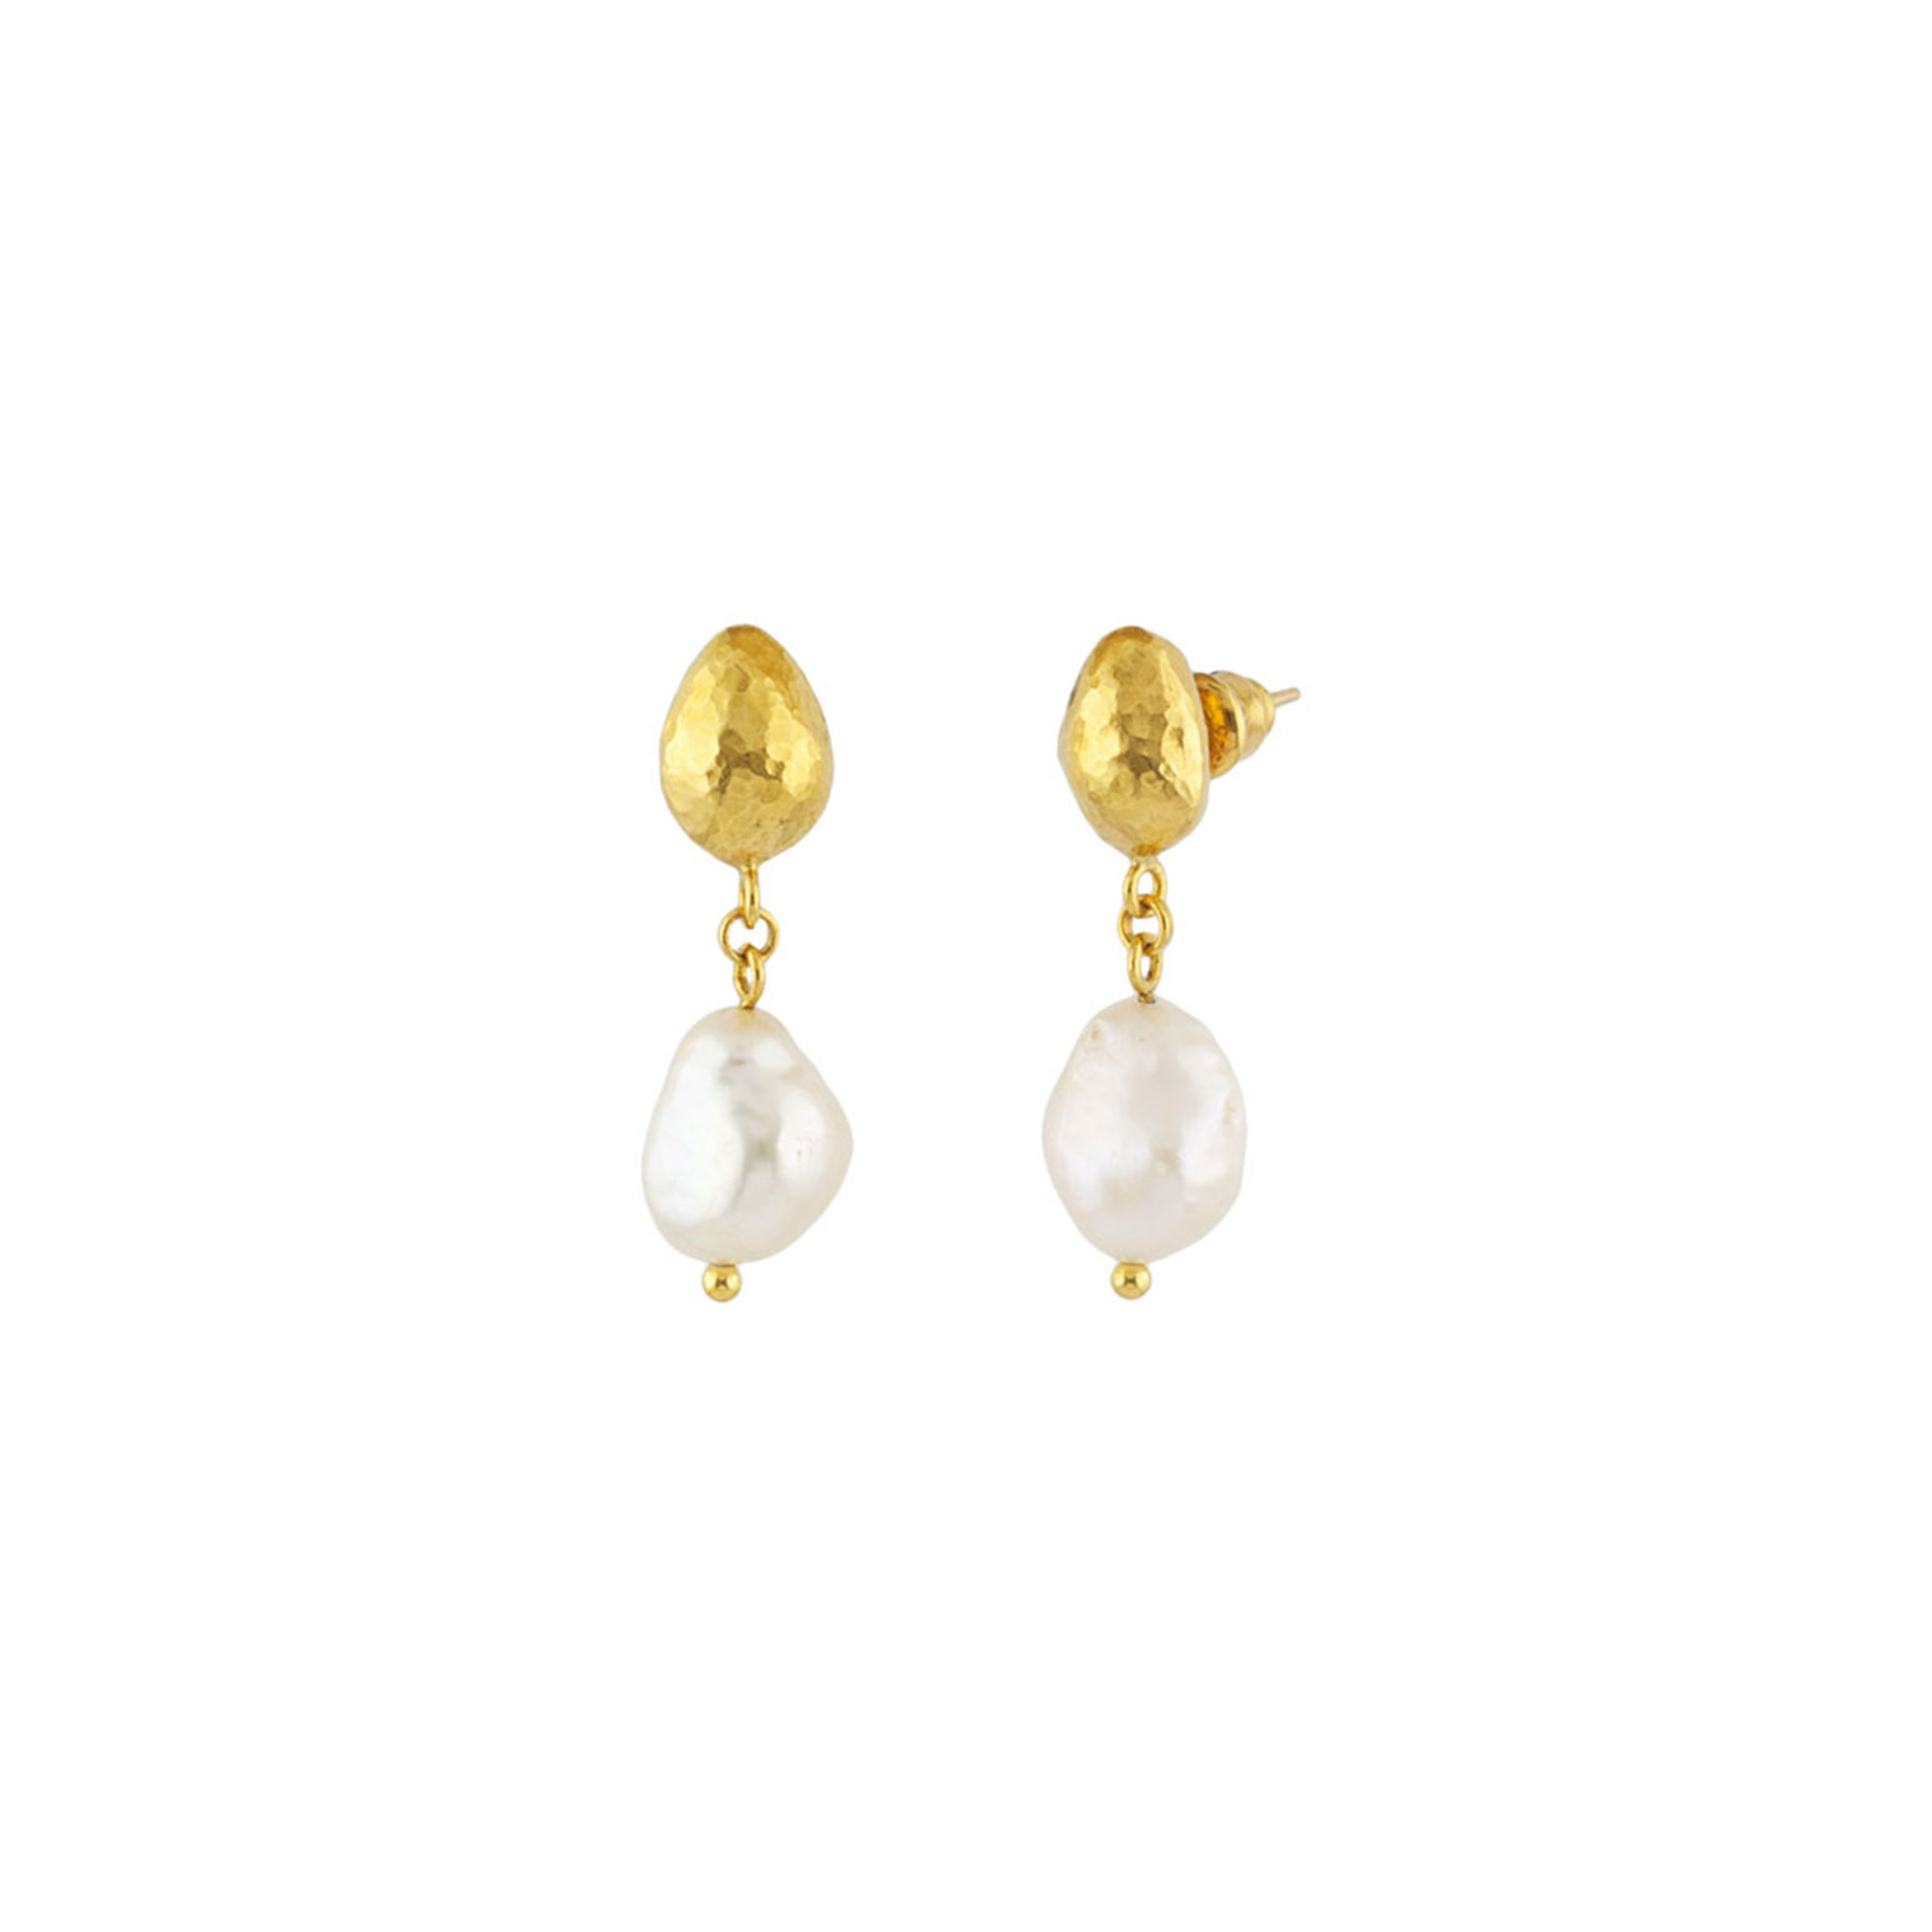 Gurhan 24K Yellow Gold  White Fresh Water Pearl Gold Earrings with Stones E-U22092-FWP